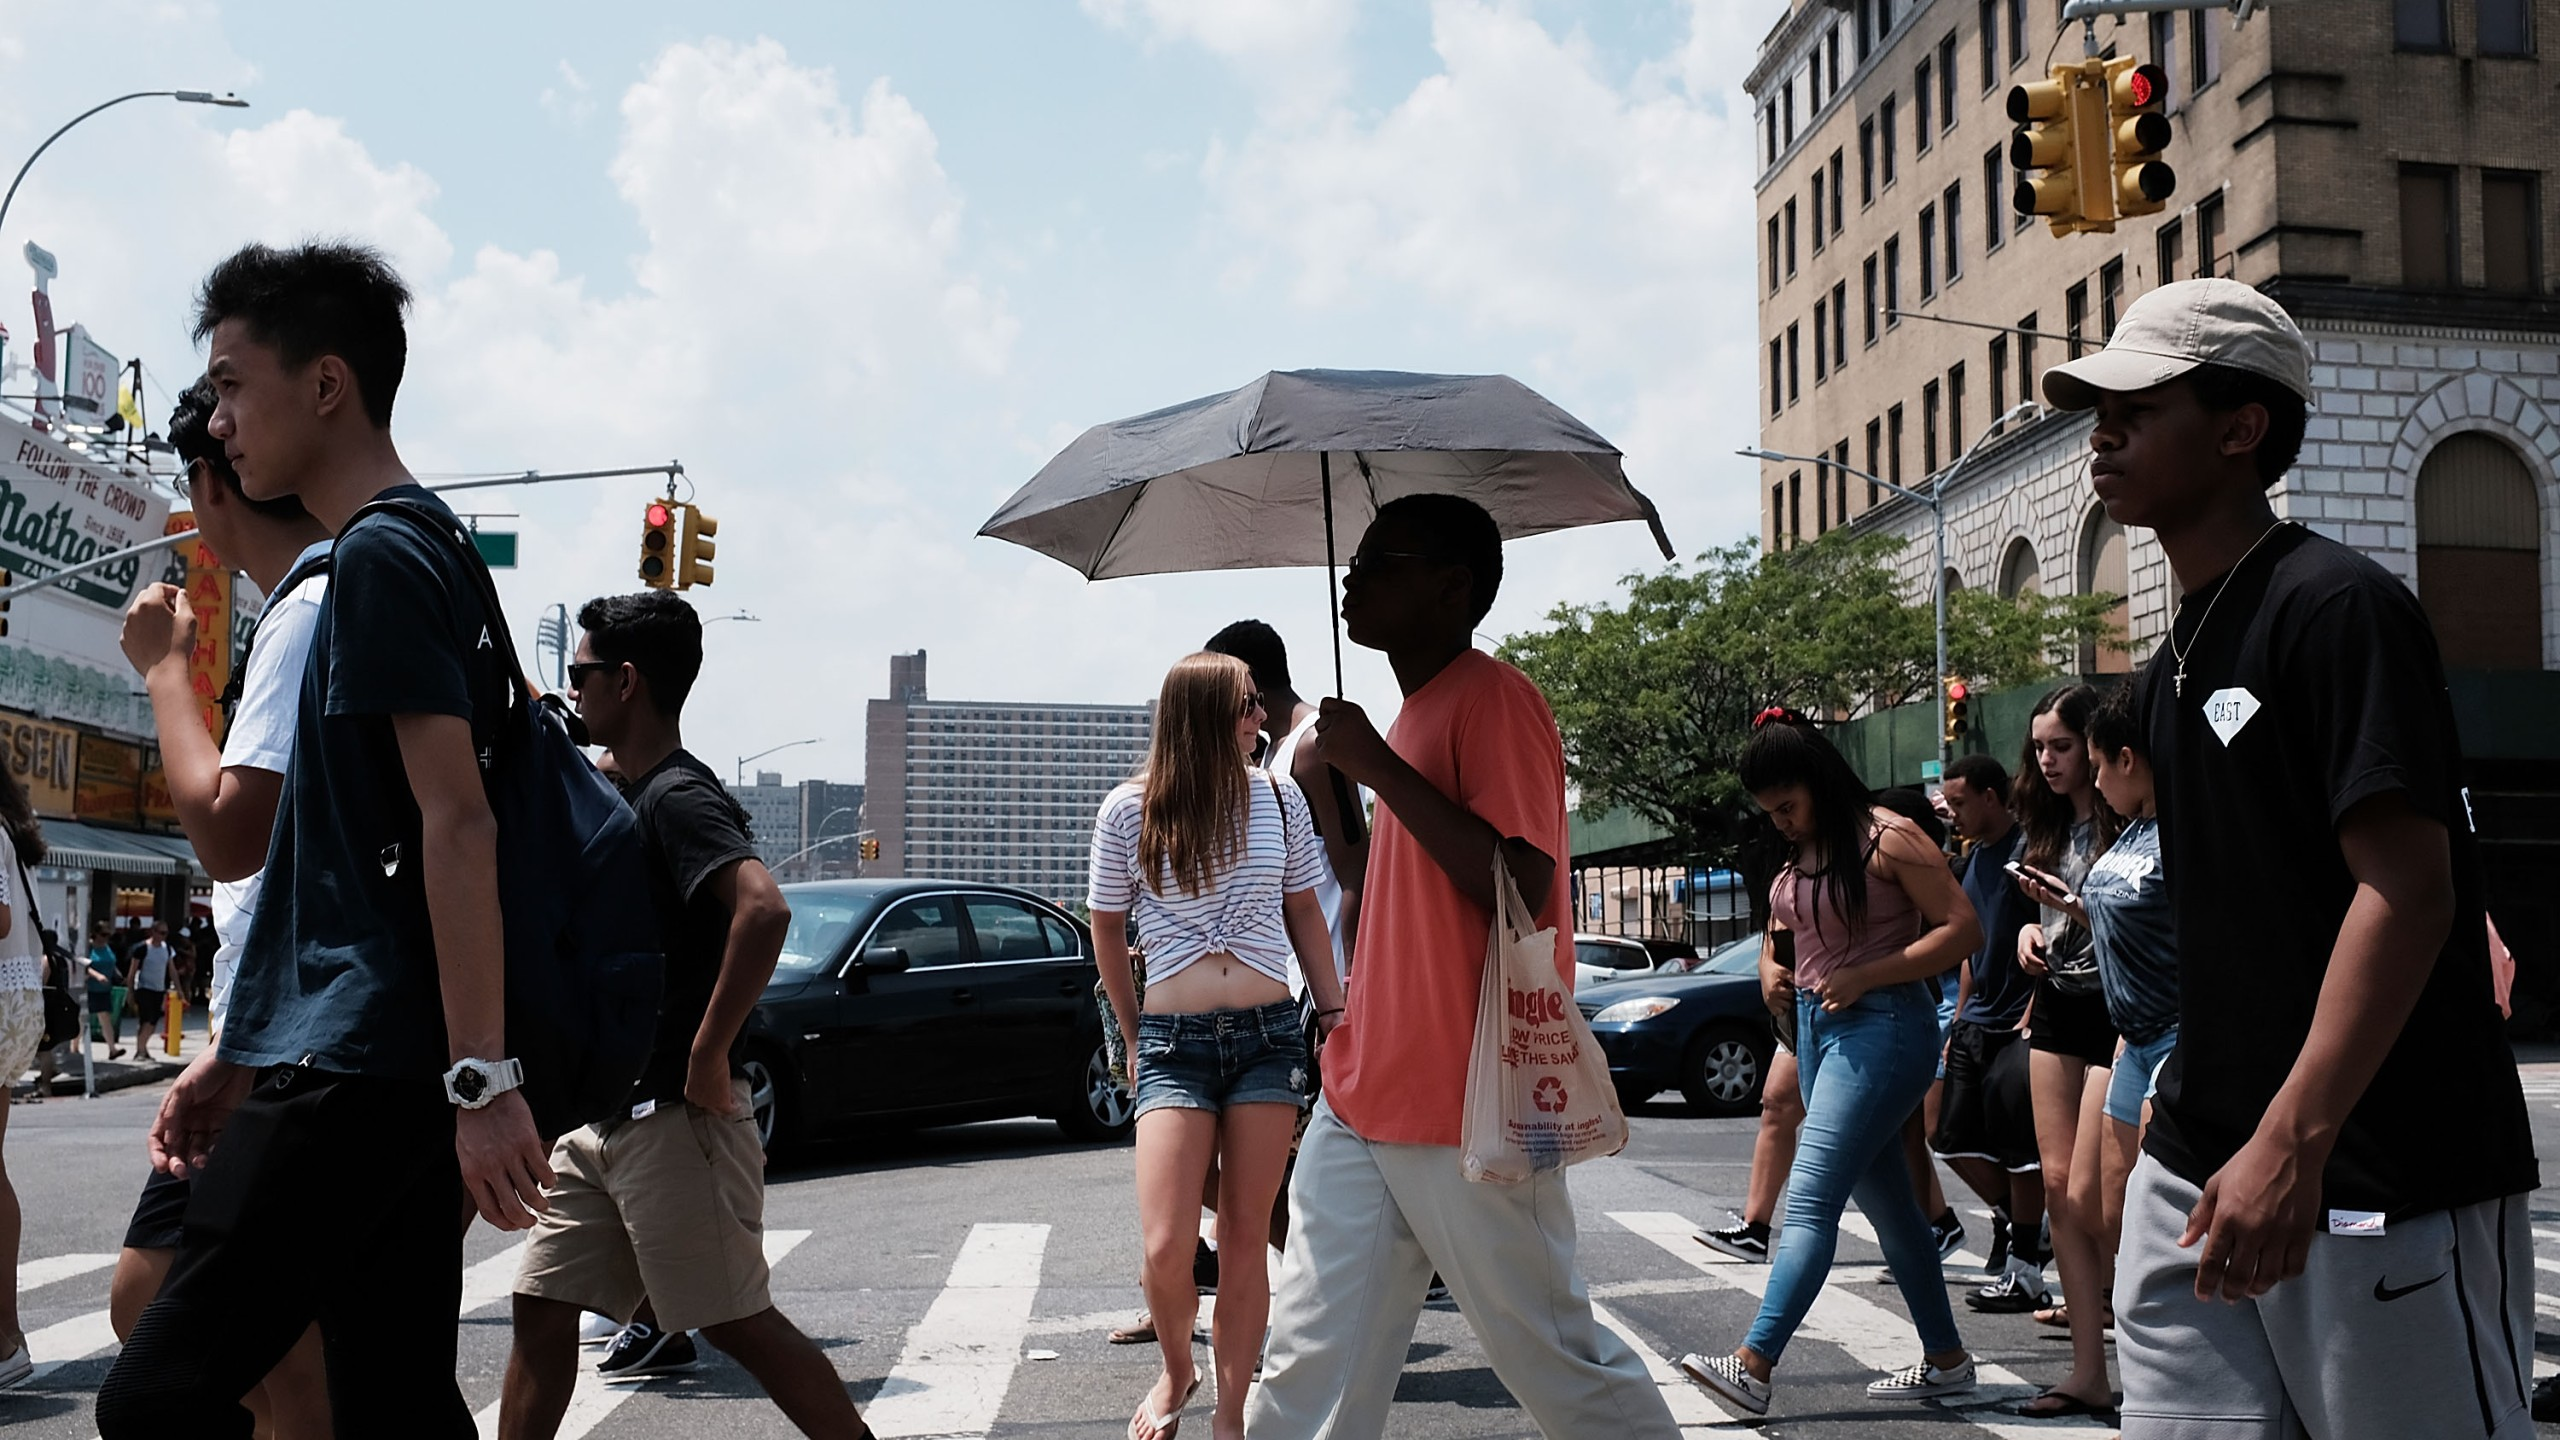 Heat descends on nyc